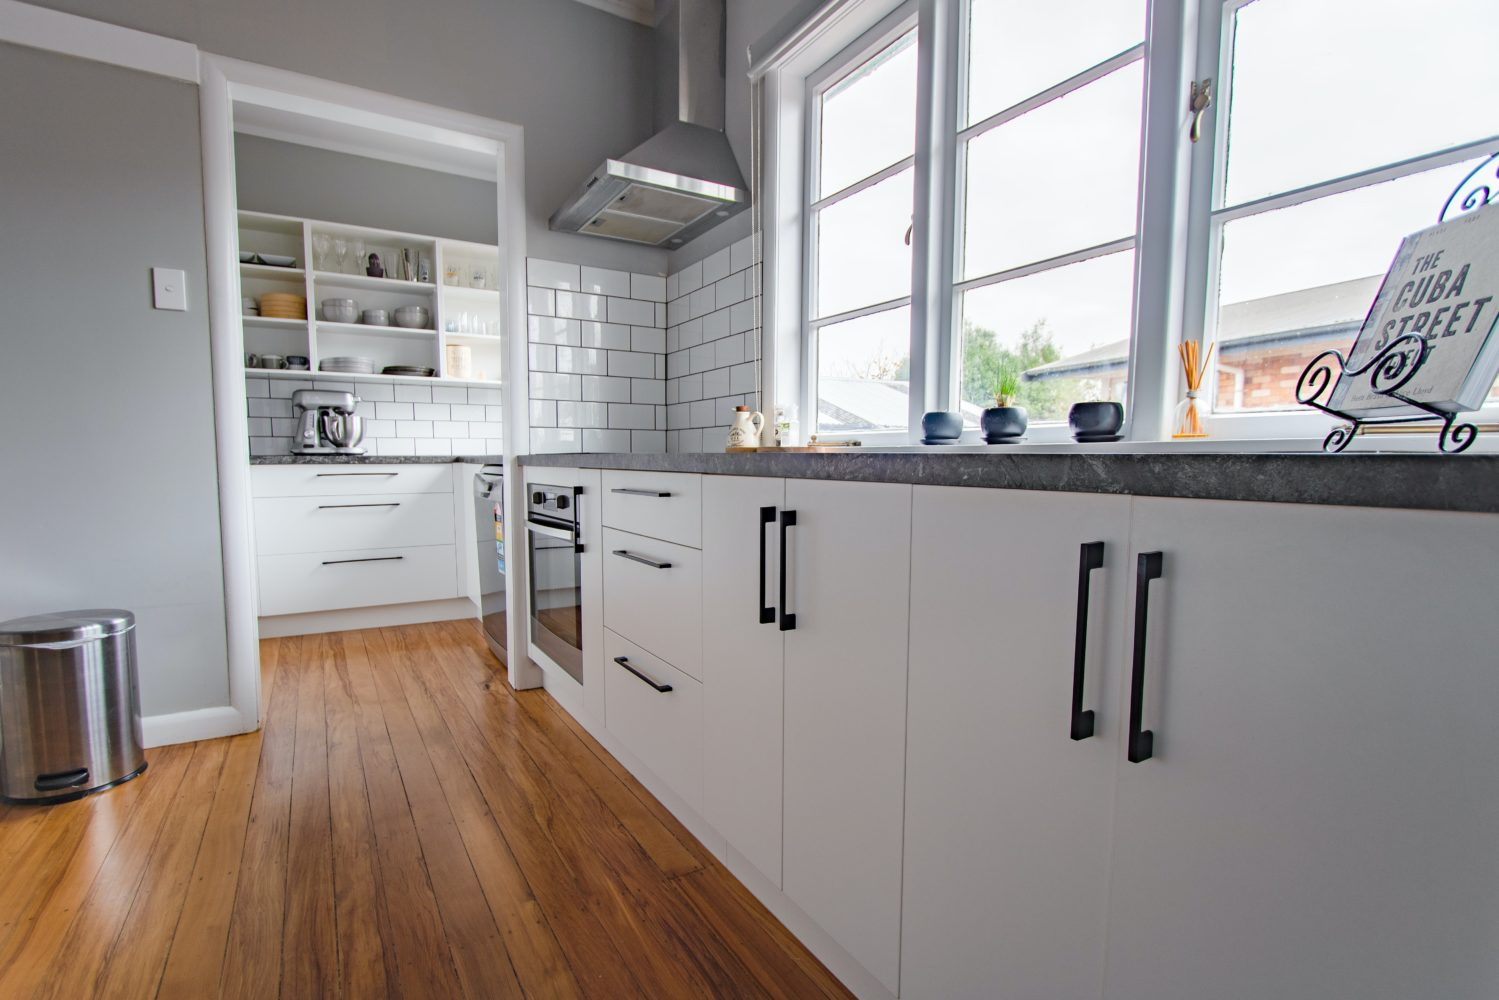 Kitchen Flooring Ideas How To Choose The Best Option For You